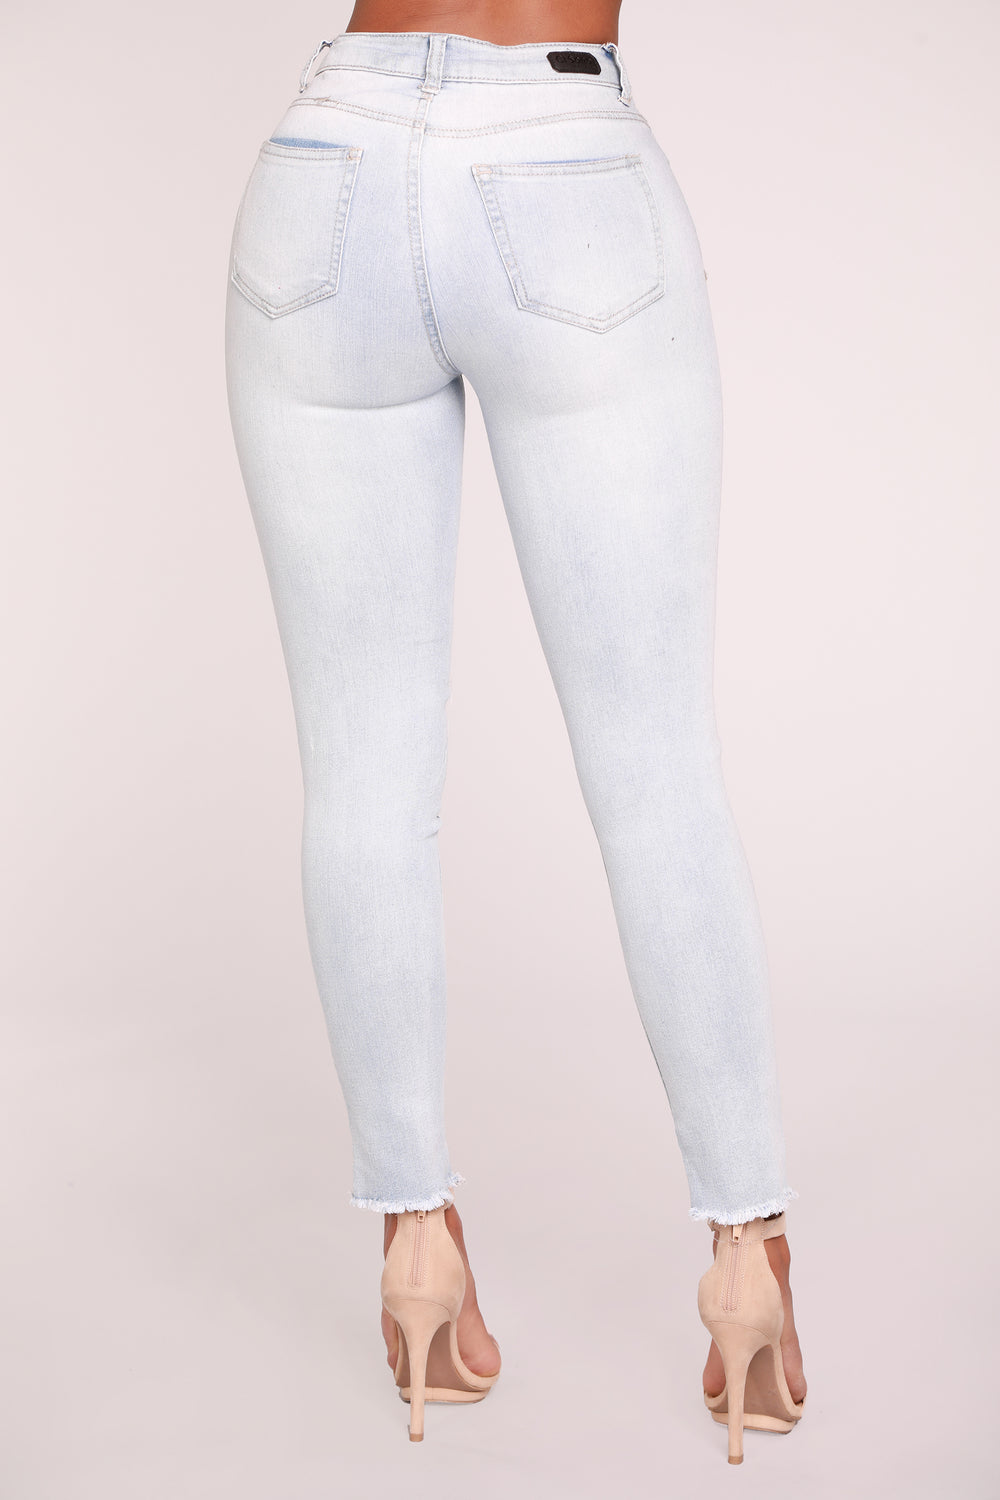 Sky Walker Ankle Jeans - Light